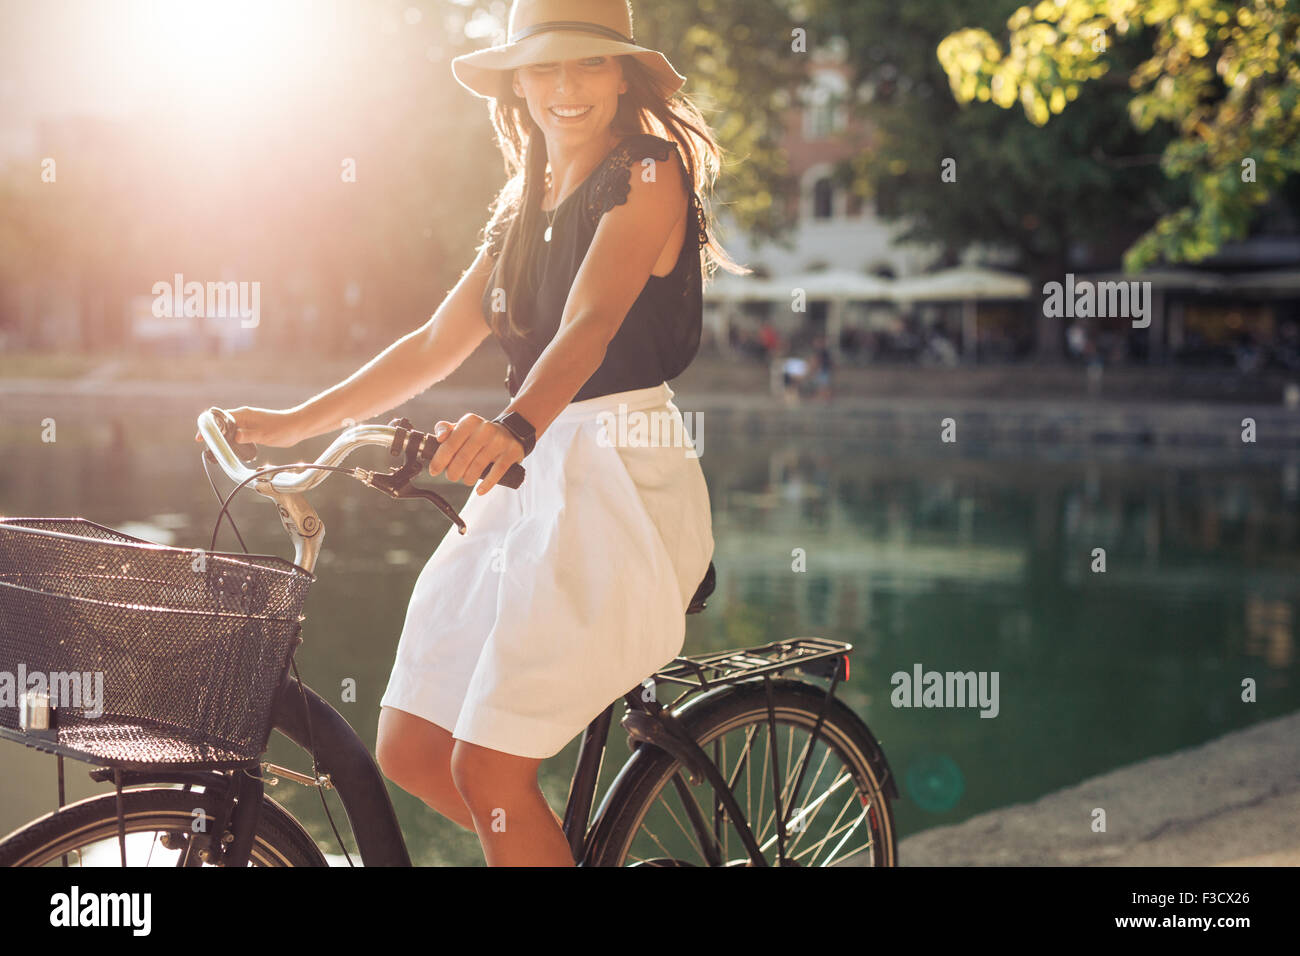 Portrait of happy young female cycling by a pond. Woman wearing a hat on a summer day riding her bicycle at city - Stock Image